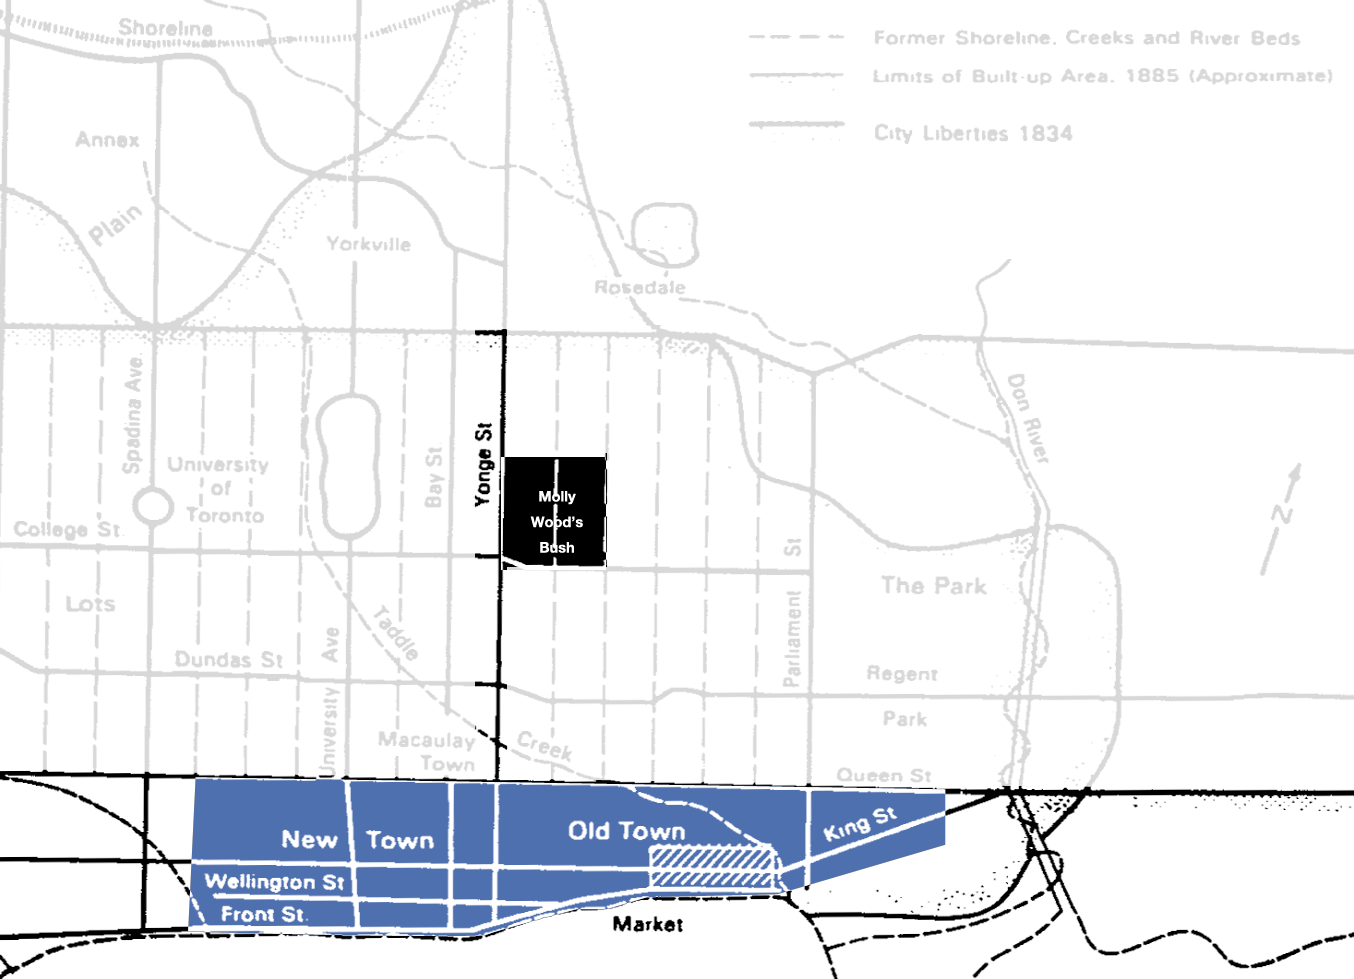 Figure 1. Extent of development (unmasked areas in blue, roads in black) for Town of York, ca. 1820s. Molly Wood's Bush (black) overlapped two park lots [Spelt 1984 (with adaptations by Idlewild)].